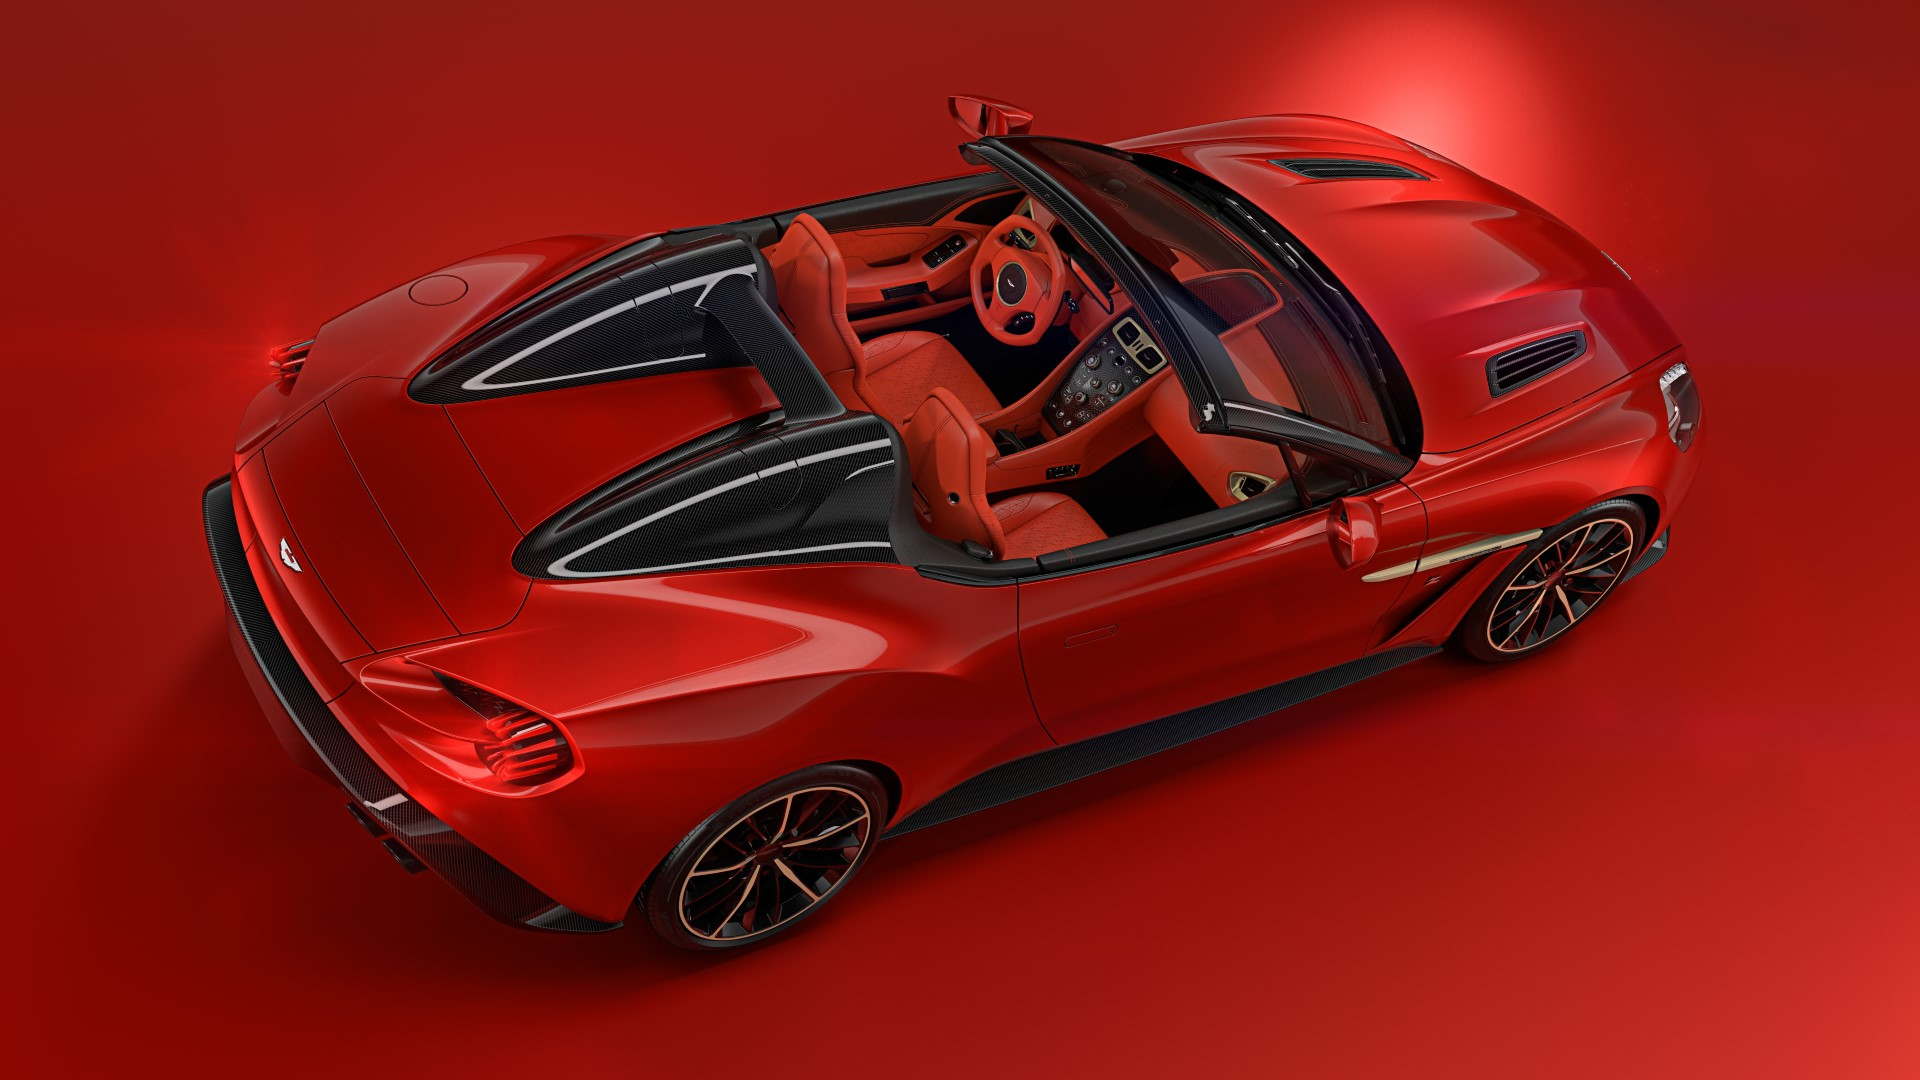 According to Aston Martin the Speedster and the Shooting Brake represent the two extremes of the Vanquish Zagato family